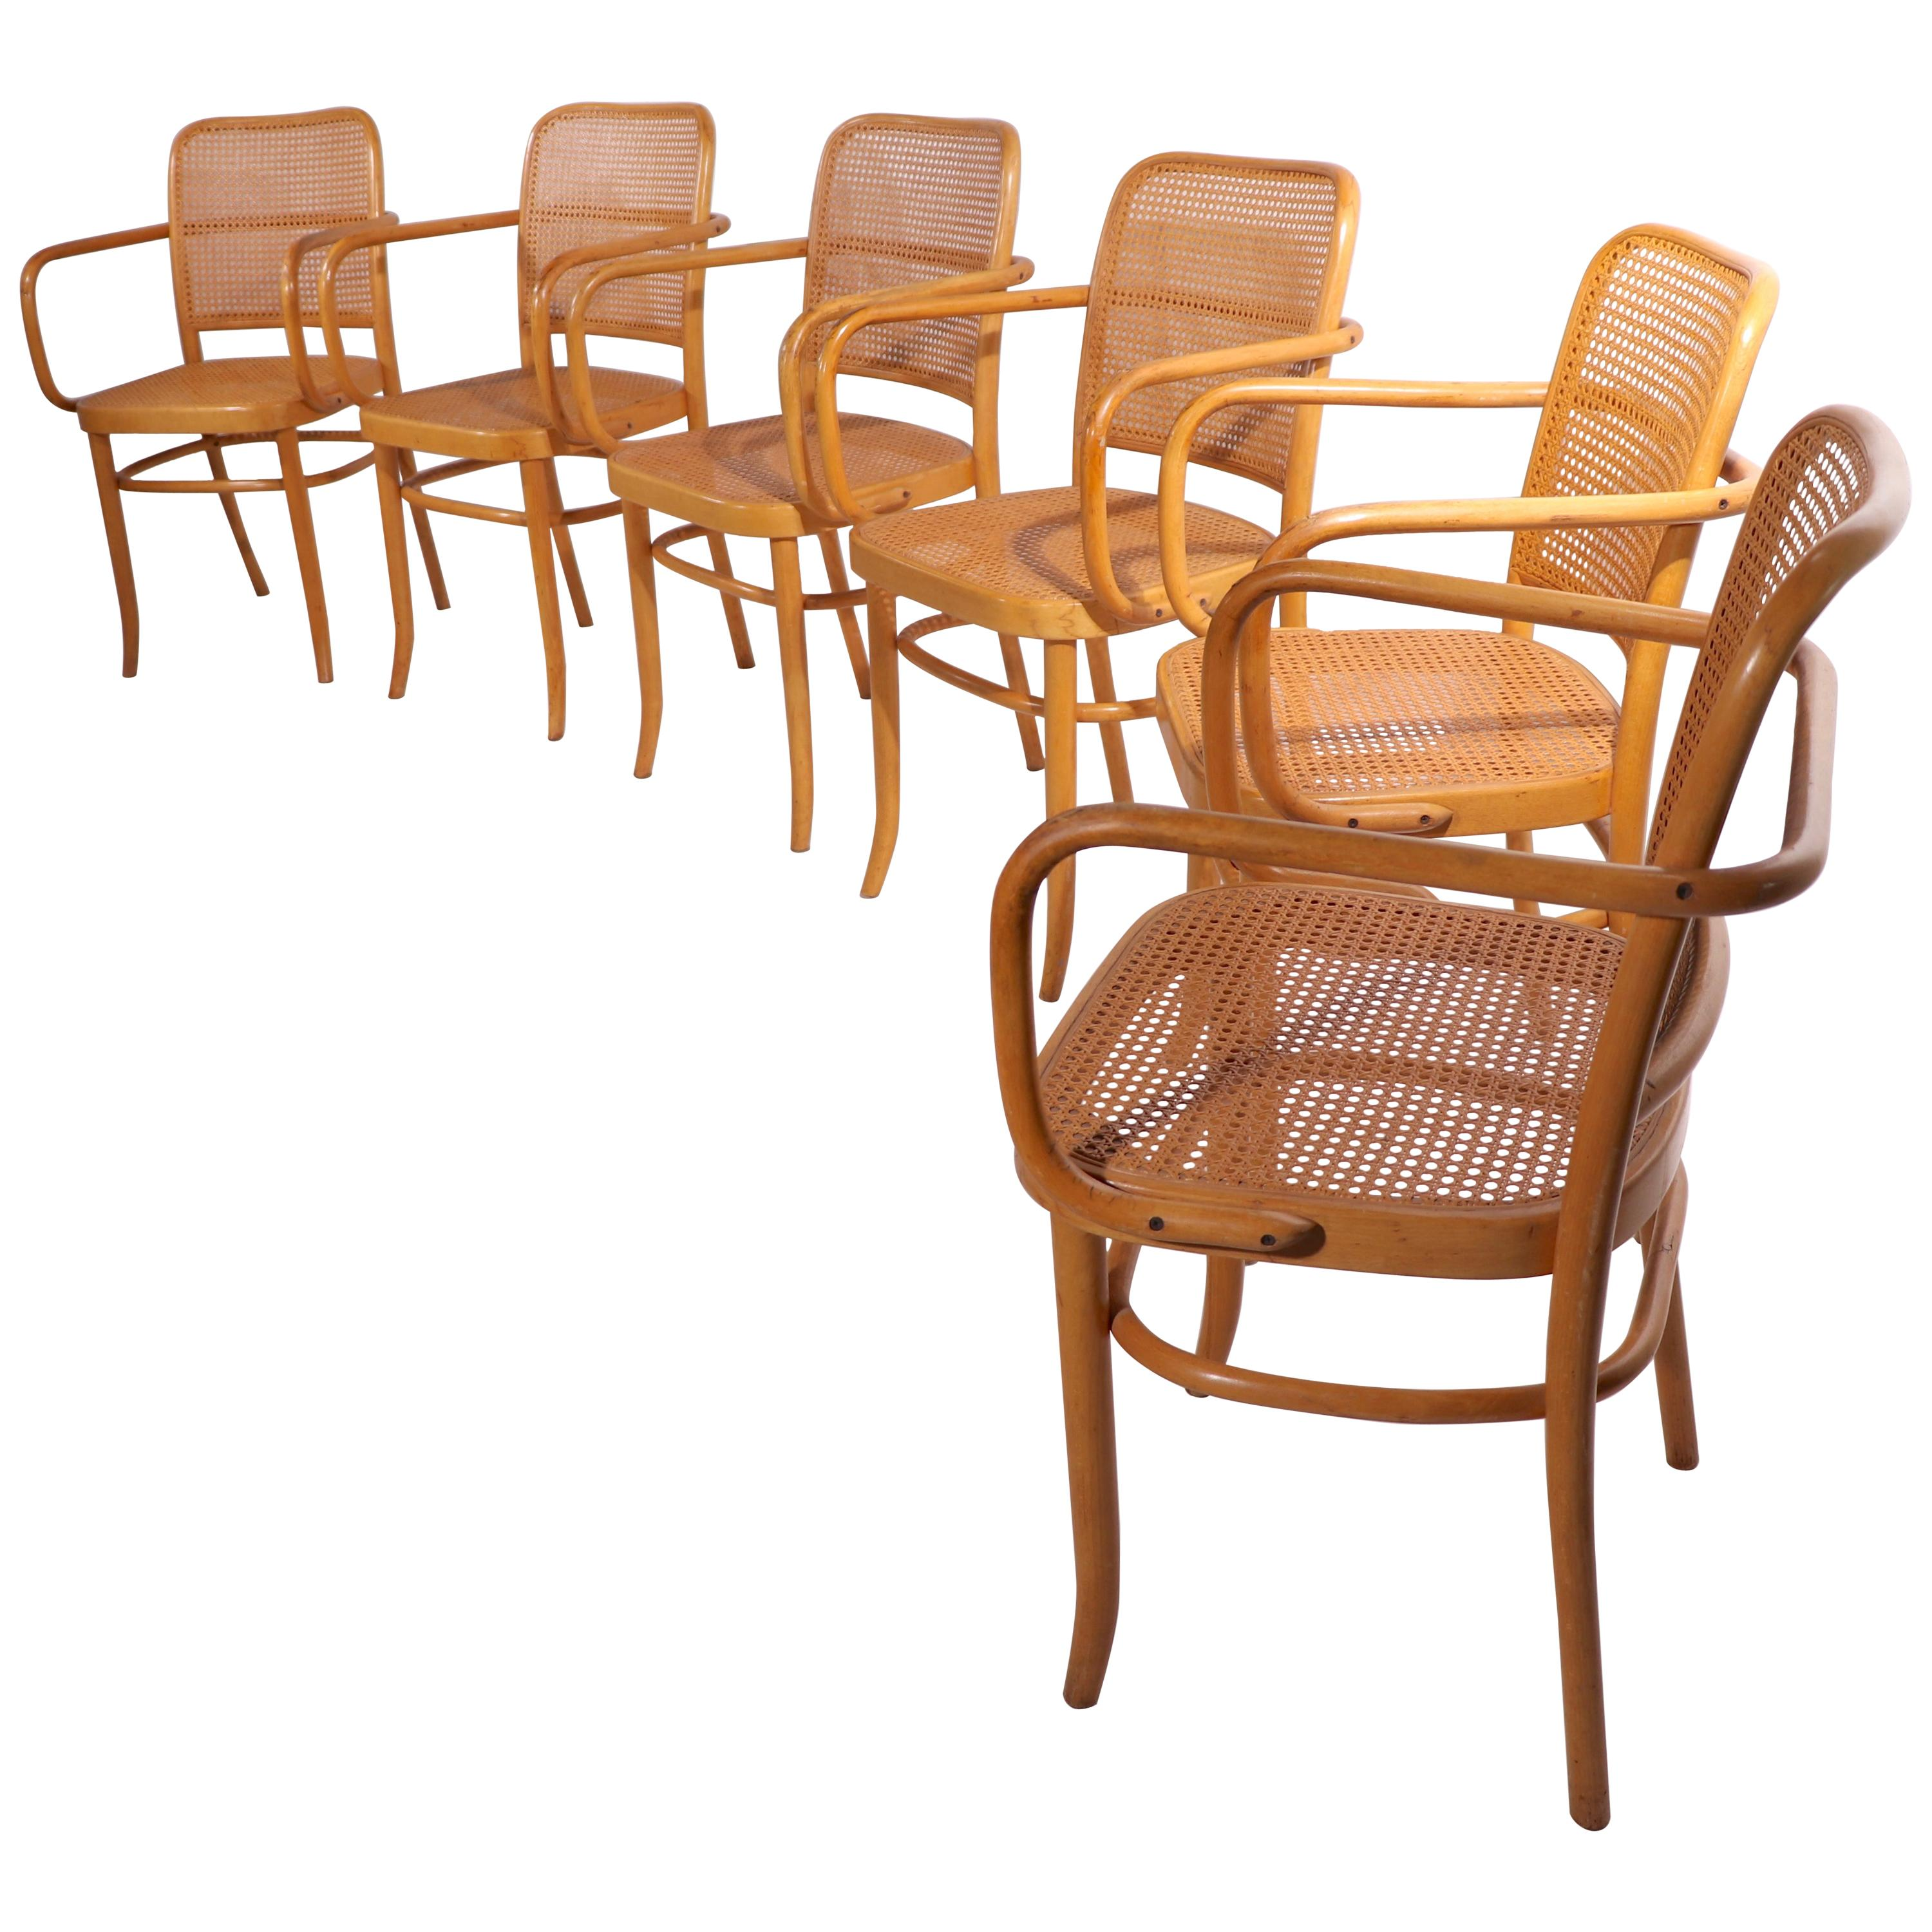 Set of Six Bentwood Chairs by Hoffman for Stendig